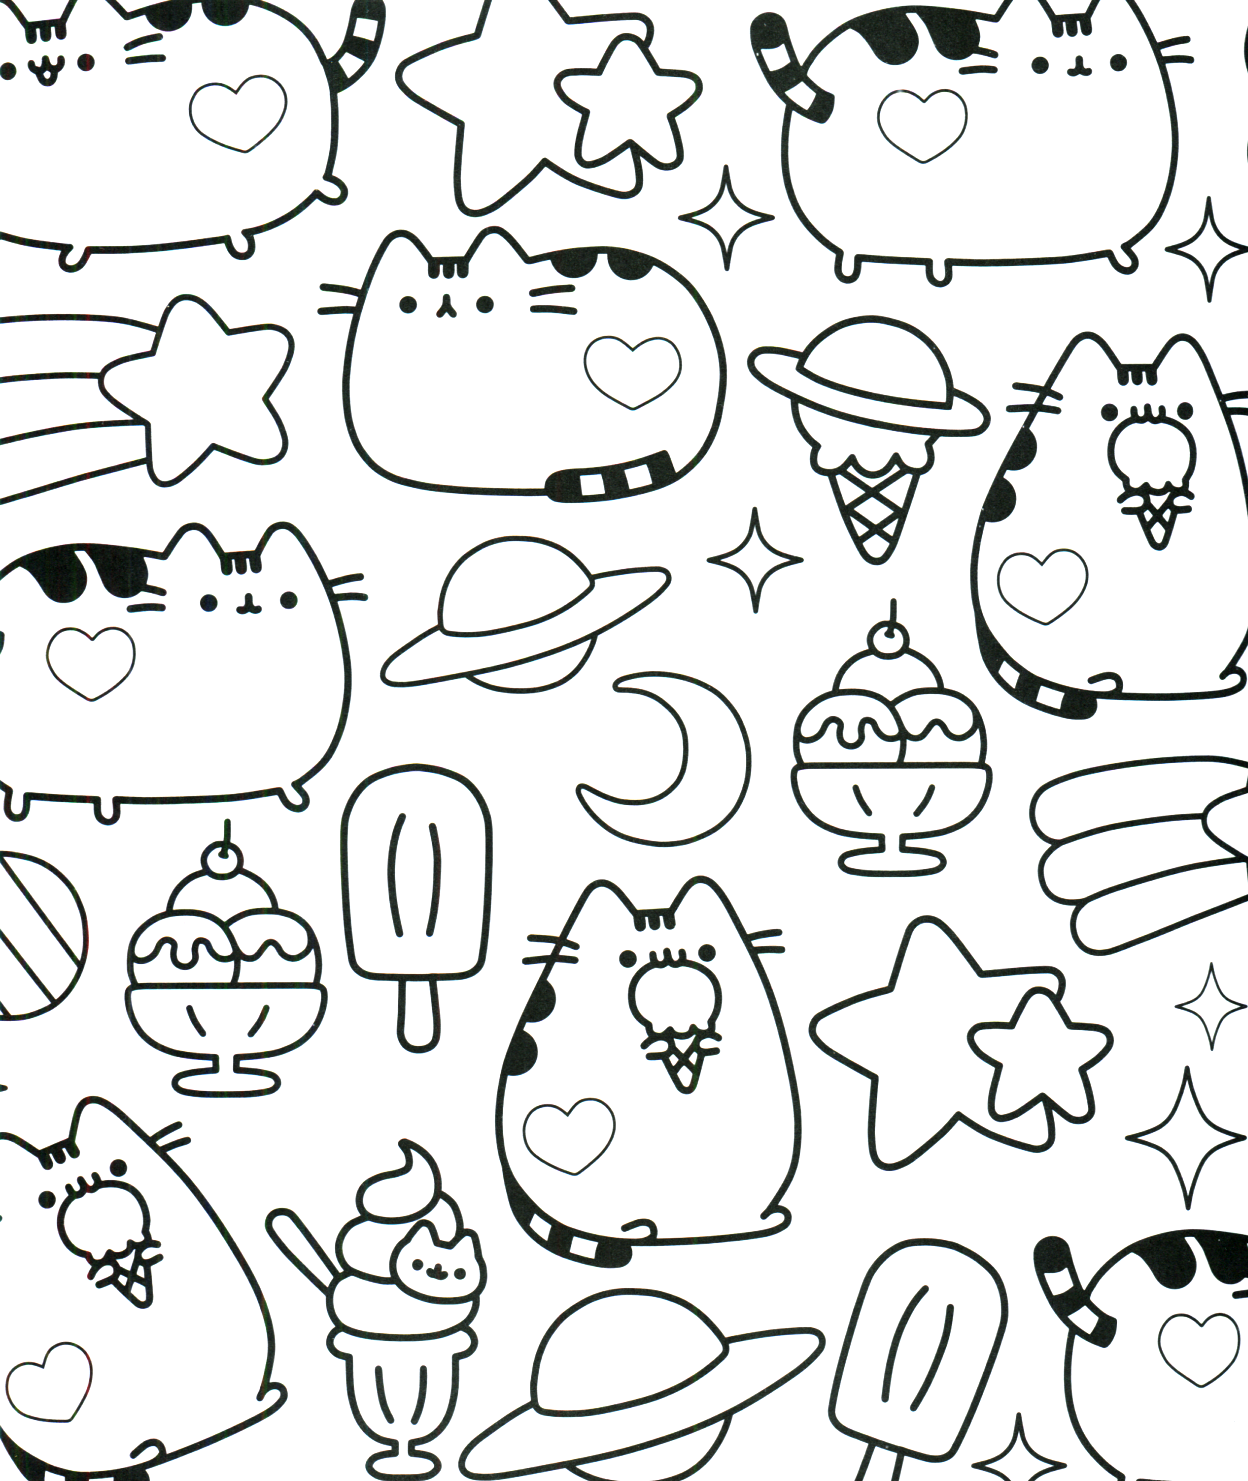 Kawaii Cat Coloring Pages At Getdrawings Com Free For